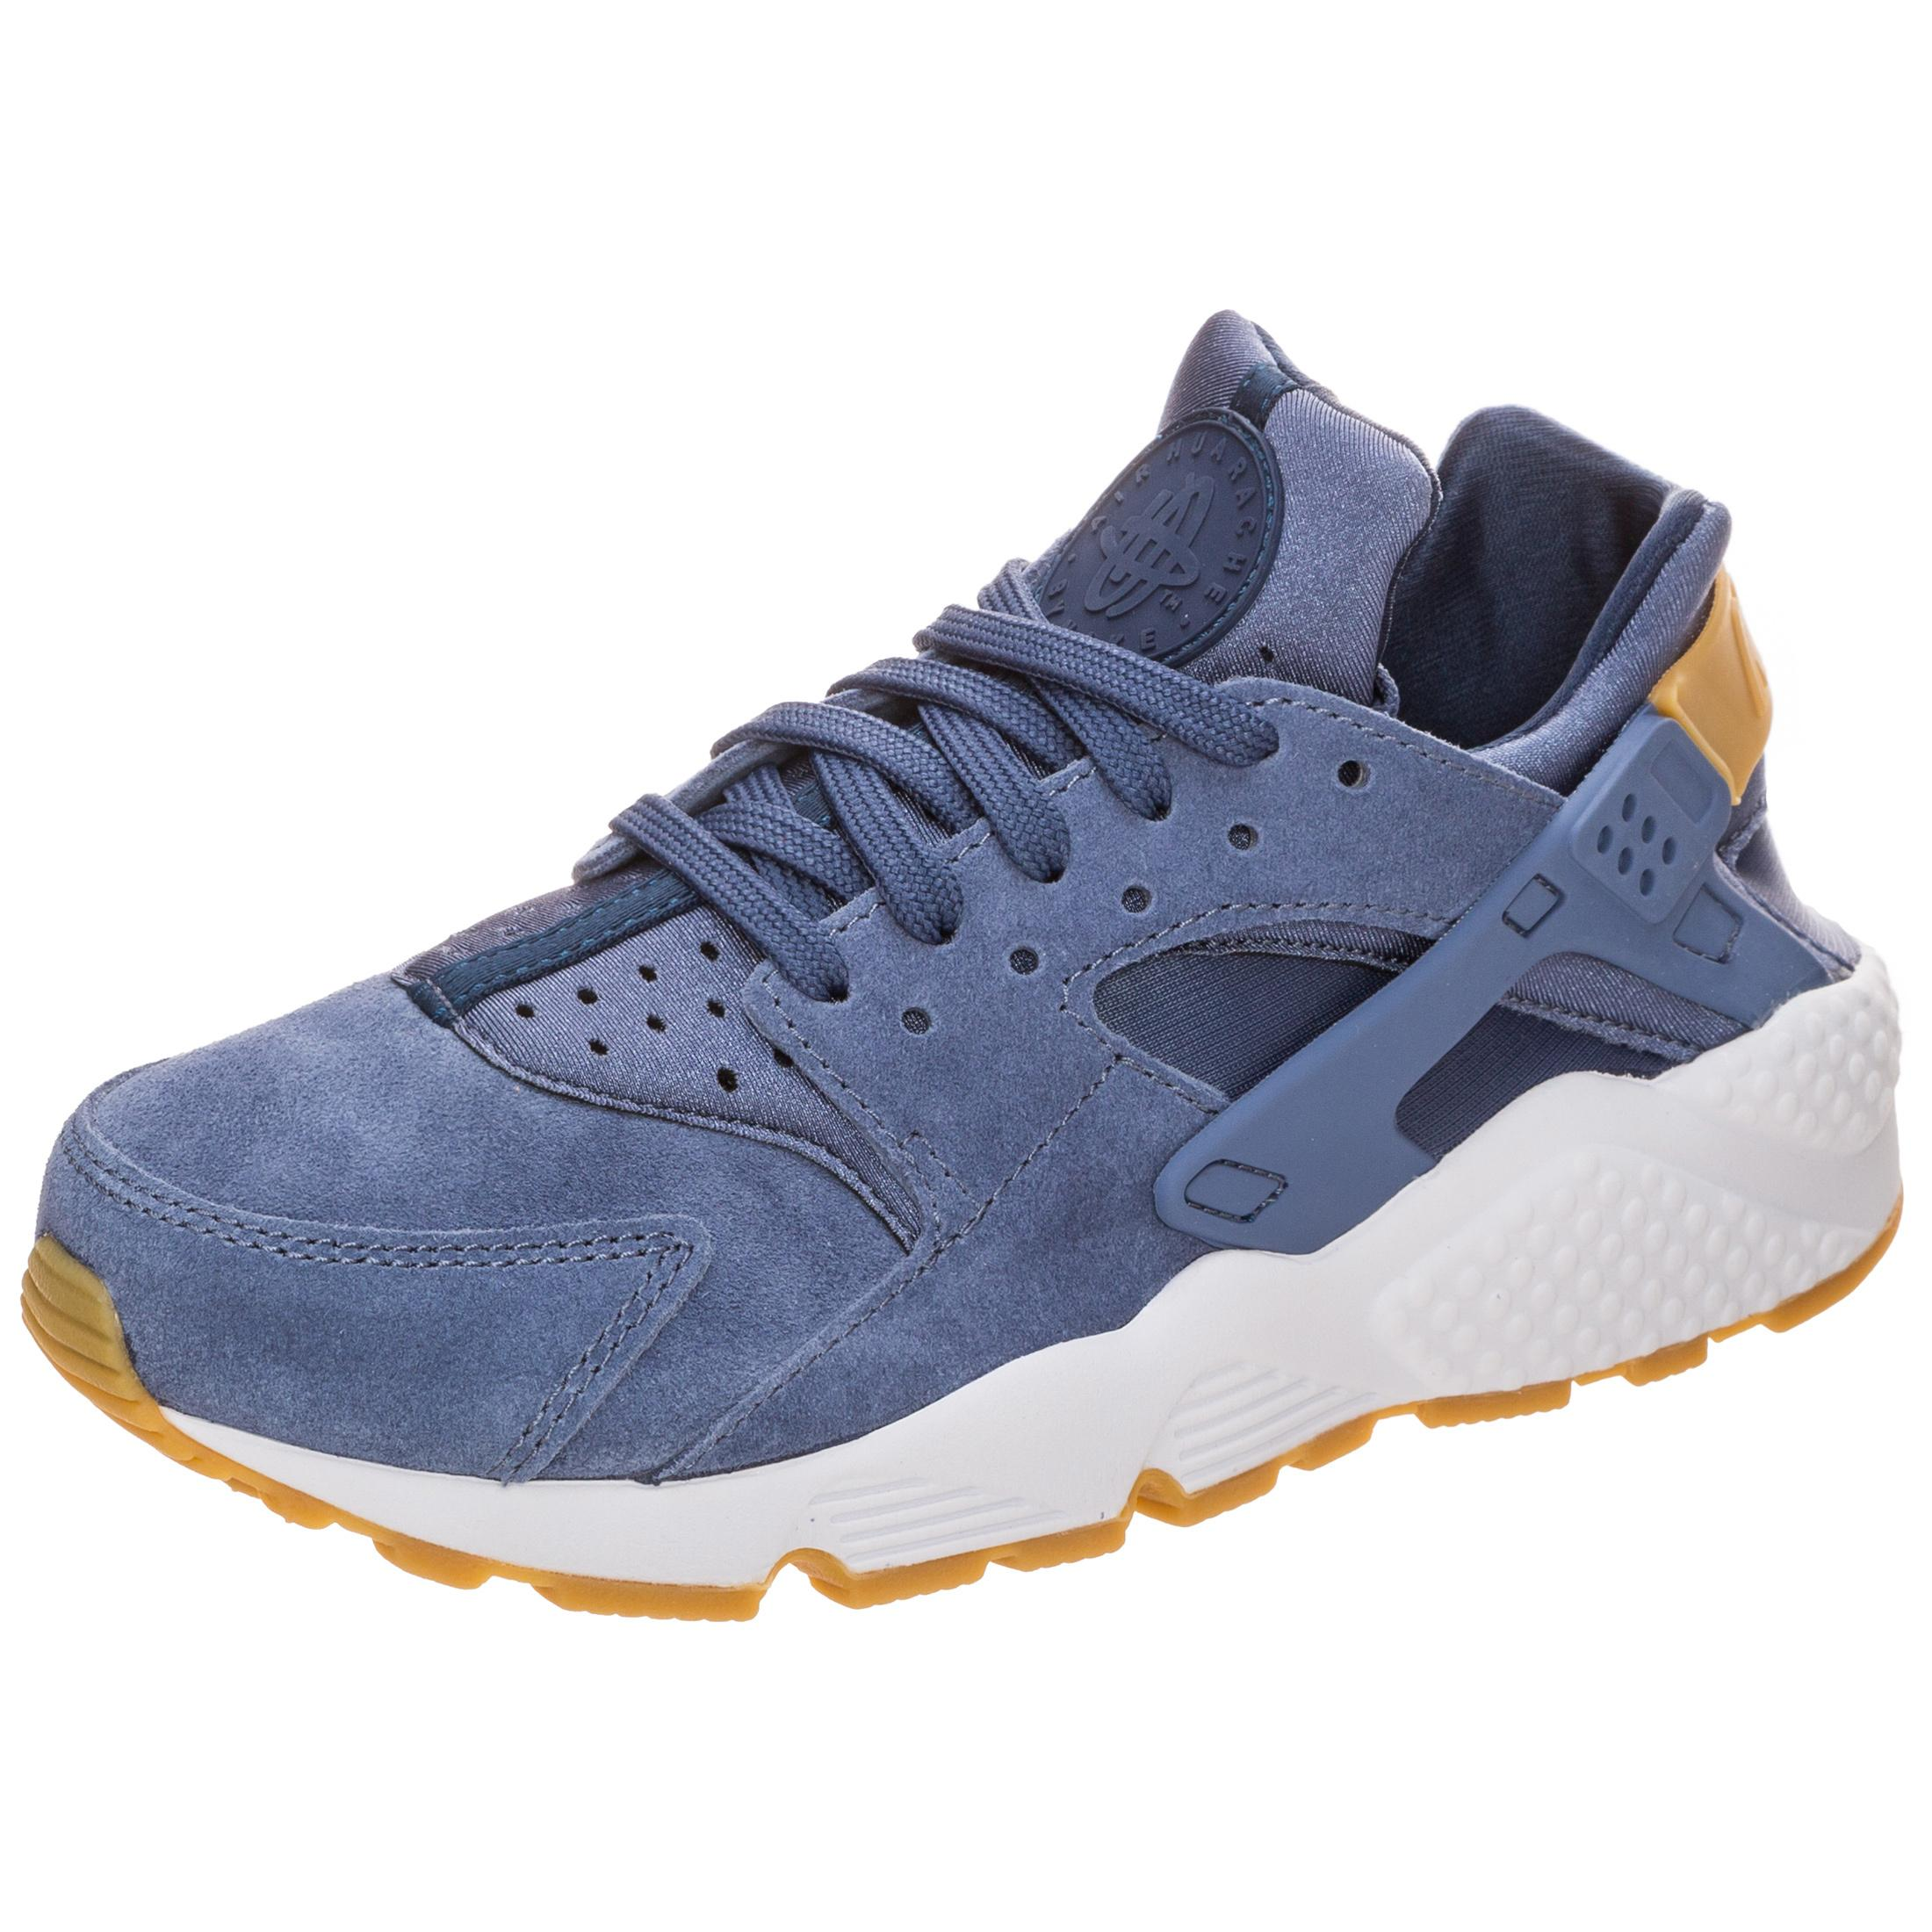 Nike W Air Huarache Run Ultra grau Cool GreyCool Grey